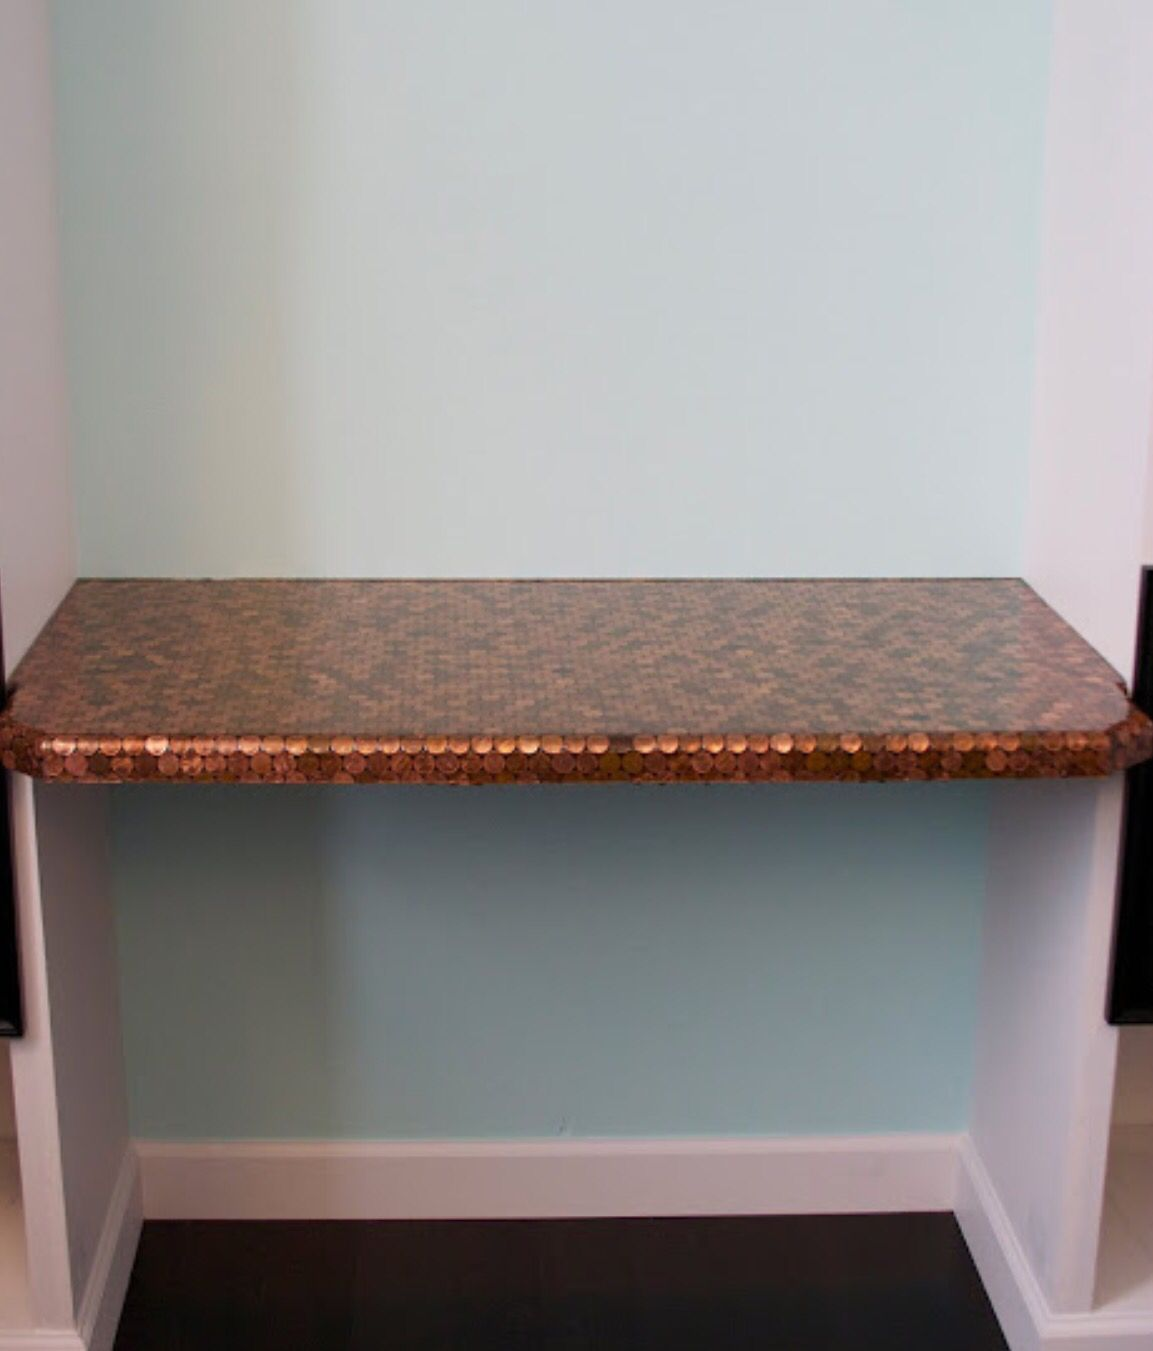 Counter/table made of pennies.